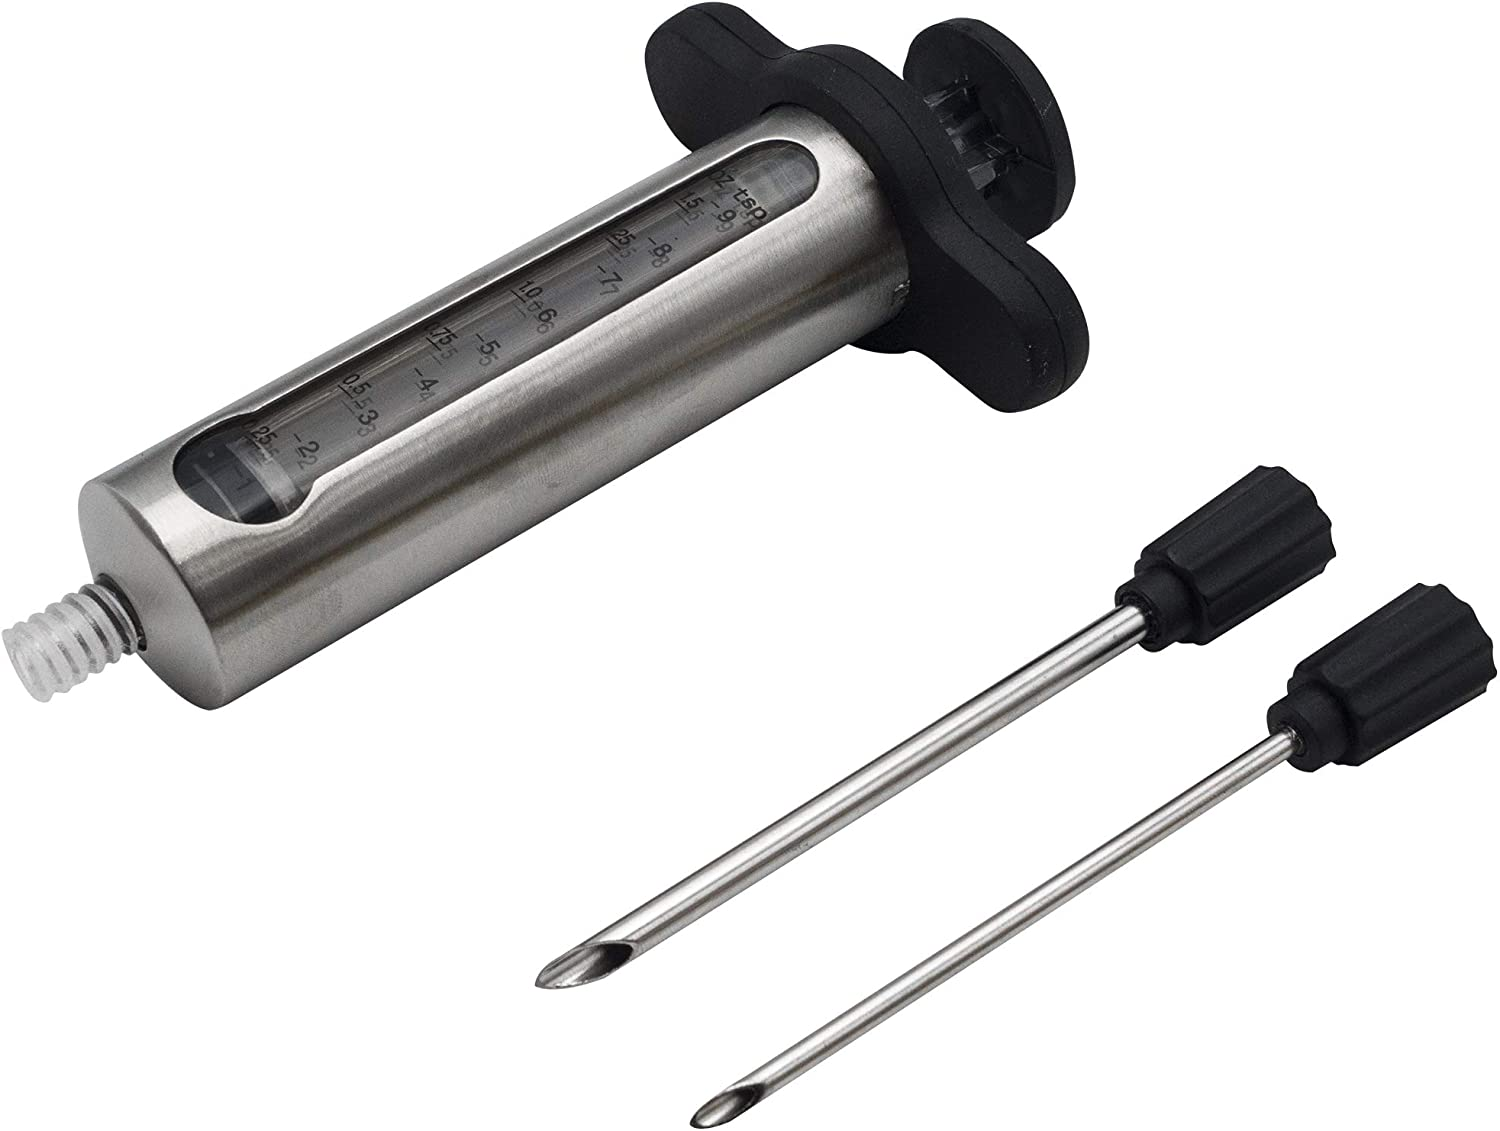 Chef Select Premium National uniform free shipping Flavor Injector La Stainless Window Steel Max 59% OFF